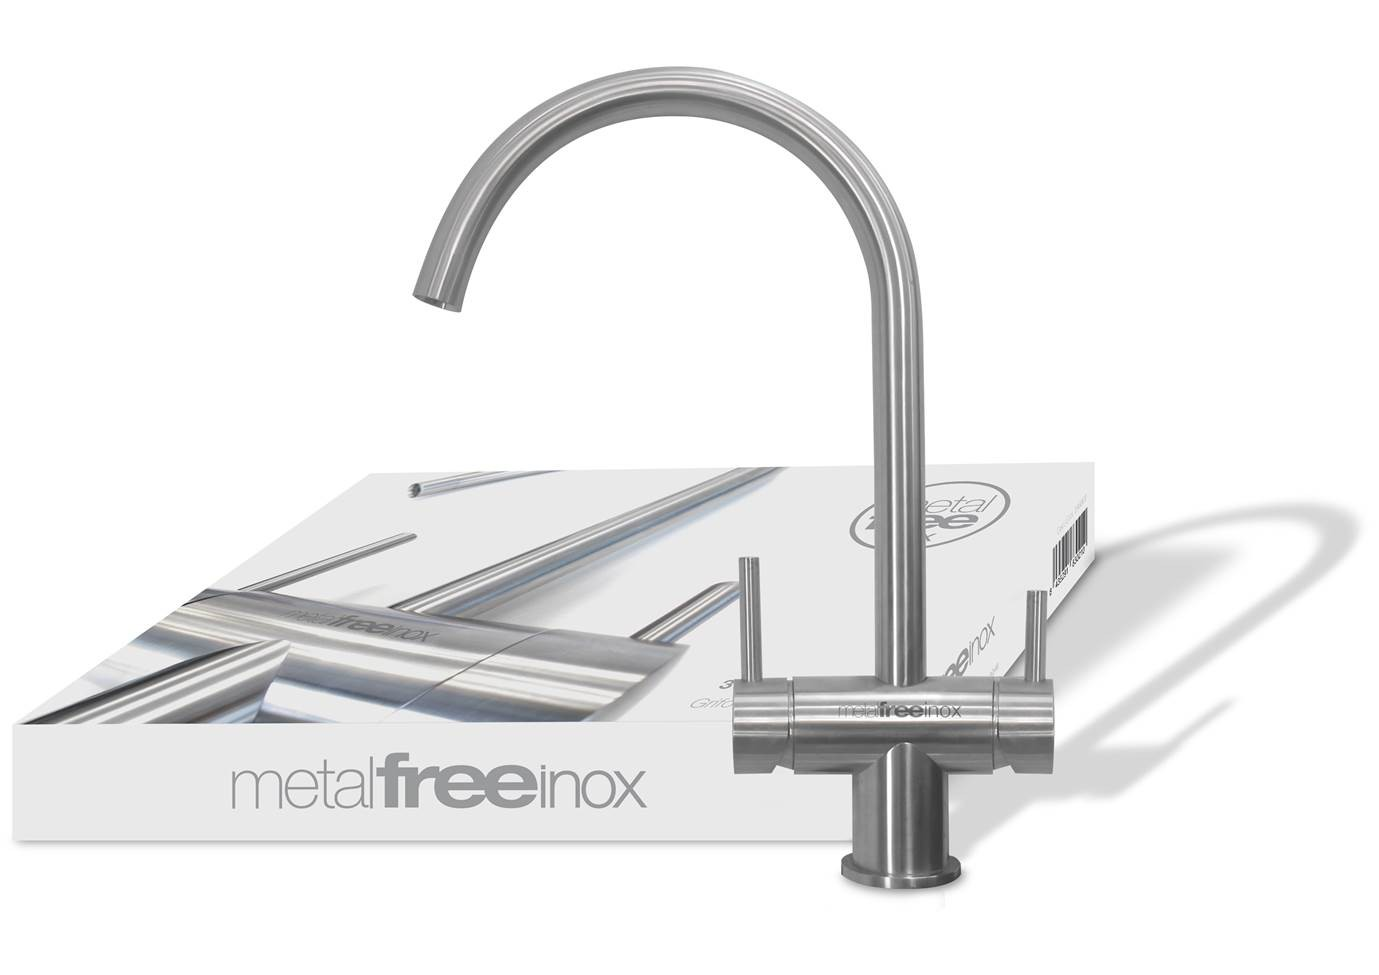 osmio_inox_brushed_chrome_3-way_tap_metal-free__2